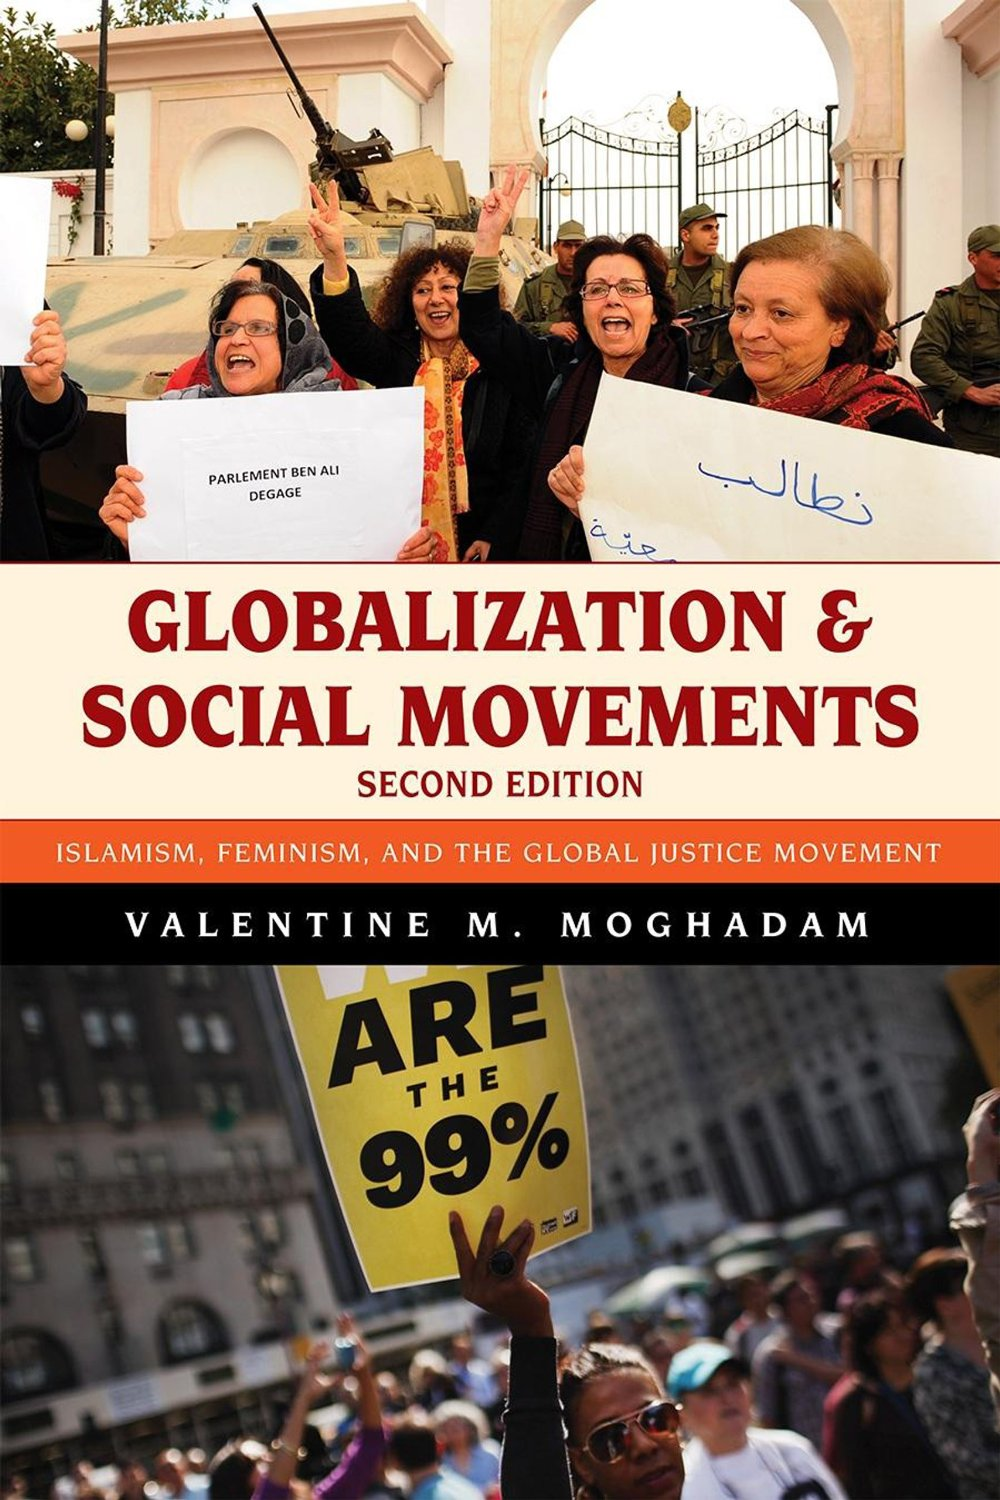 Globalization of Social Movements Islamism, Feminism and the Global Justice Movement